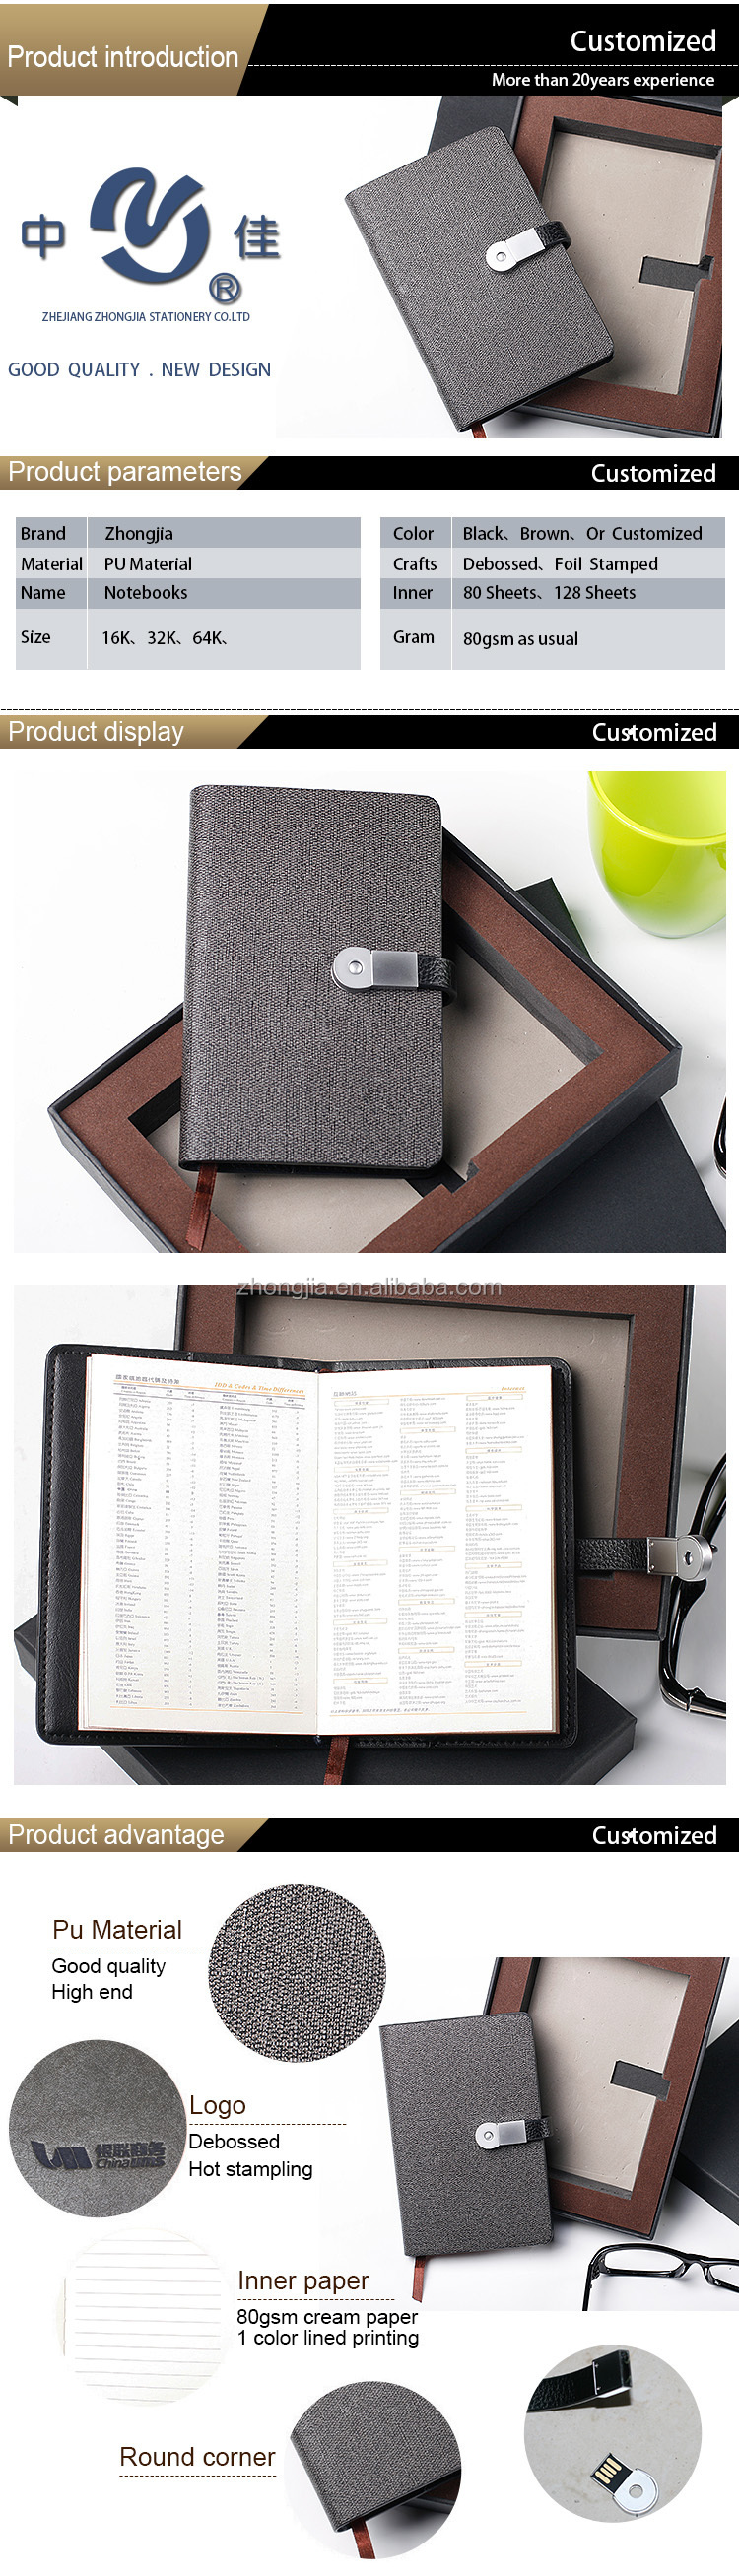 Best Selling creative leather notebook with USB